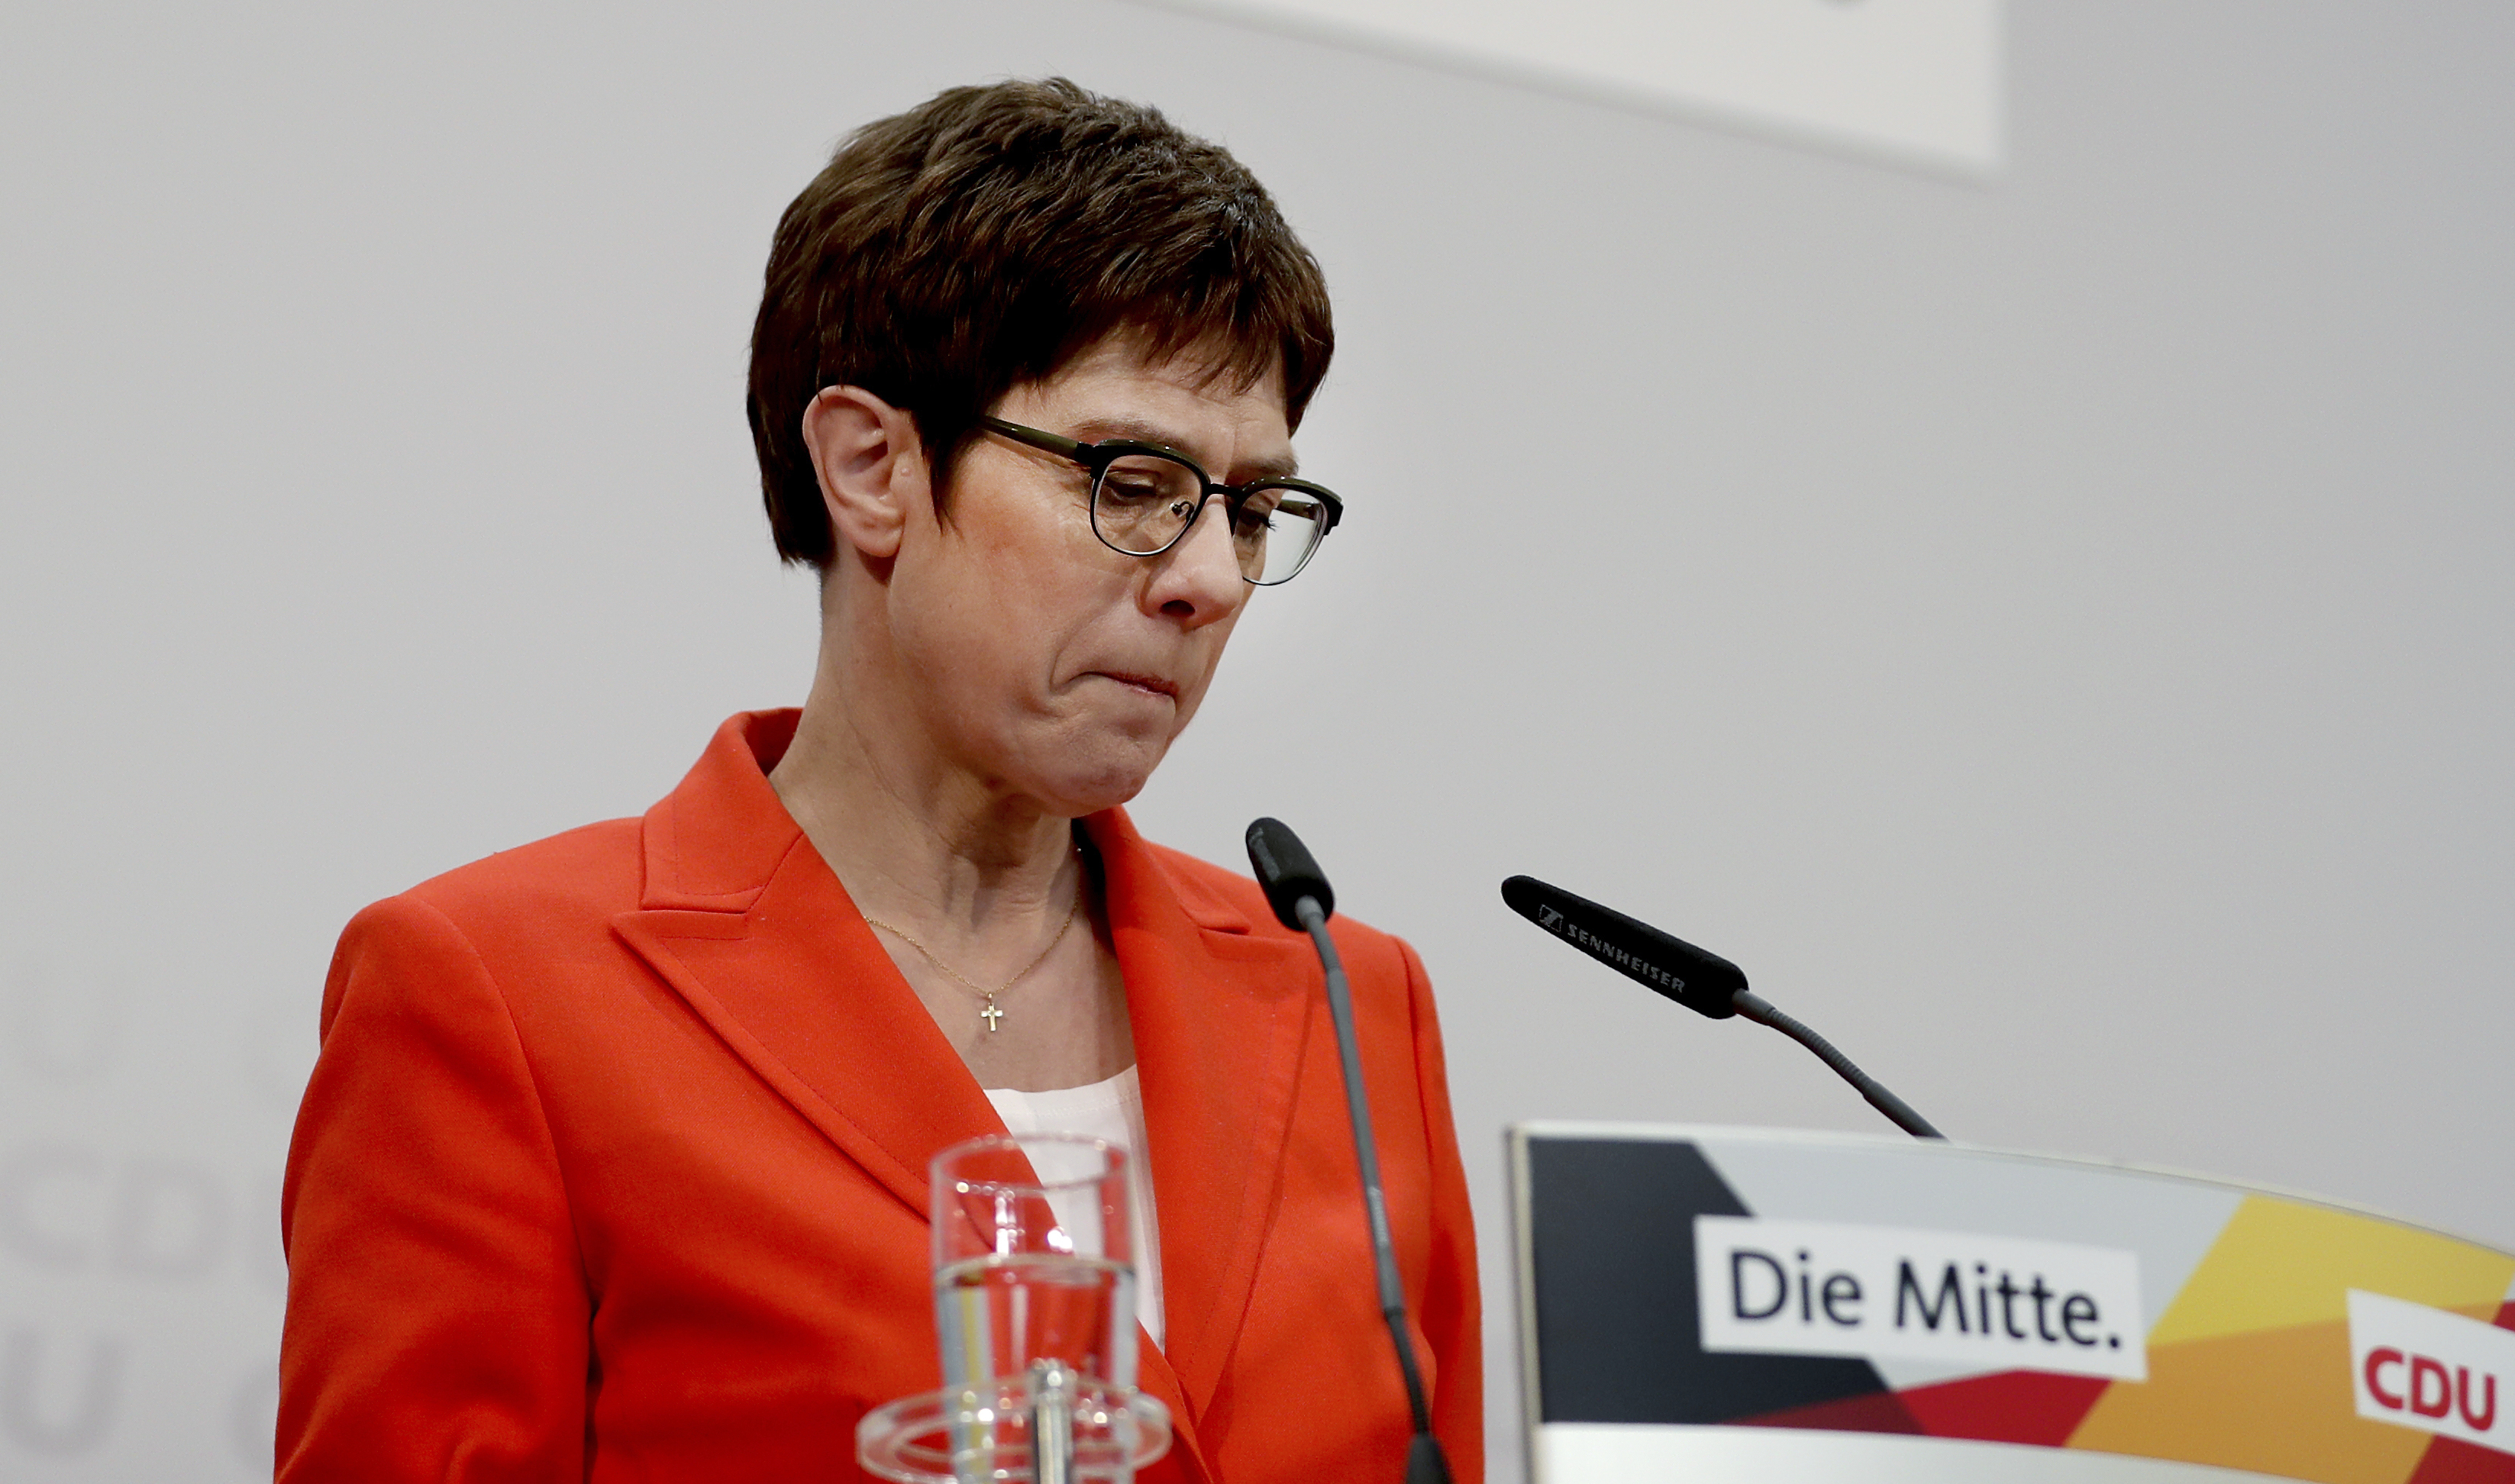 Annegret Kramp-Karrenbauer, chair of the German Christian Democratic Union (CDU), holds a press conference at the party's headquarters in Berlin, Germany on Feb. 7, 2020.